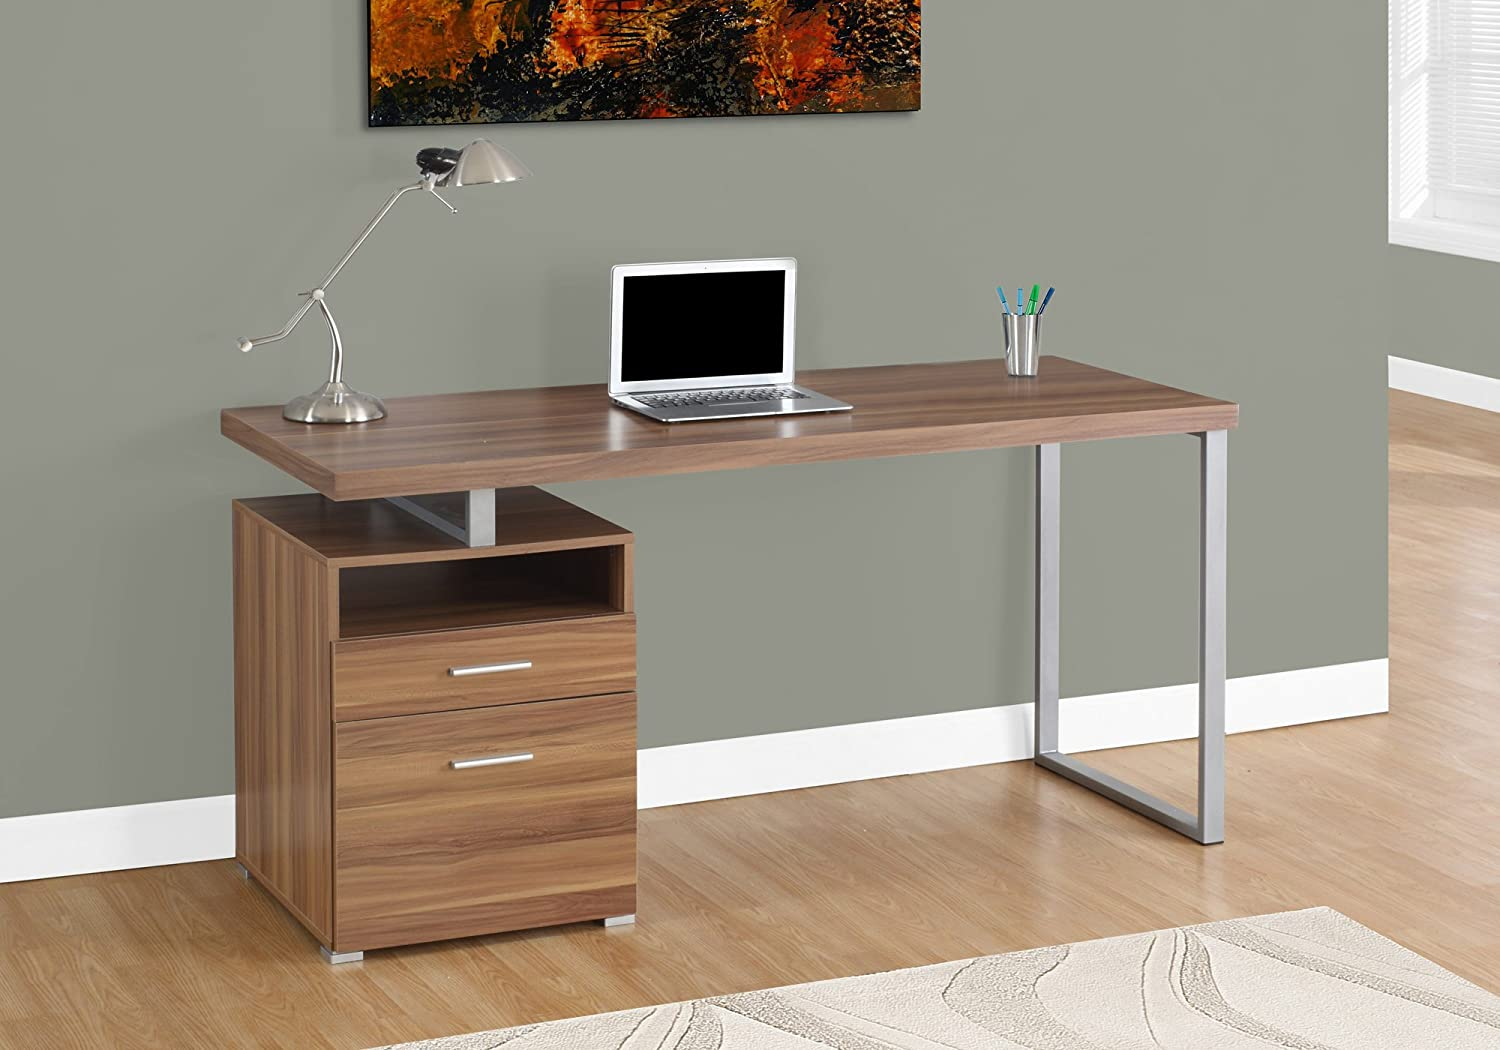 "Monarch Specialties 7146 Computer Writing Desk for Home & Office Laptop Table with Drawers Open Shelf and File Cabinet-Left or Right Set Up, 60"" L, Walnut"